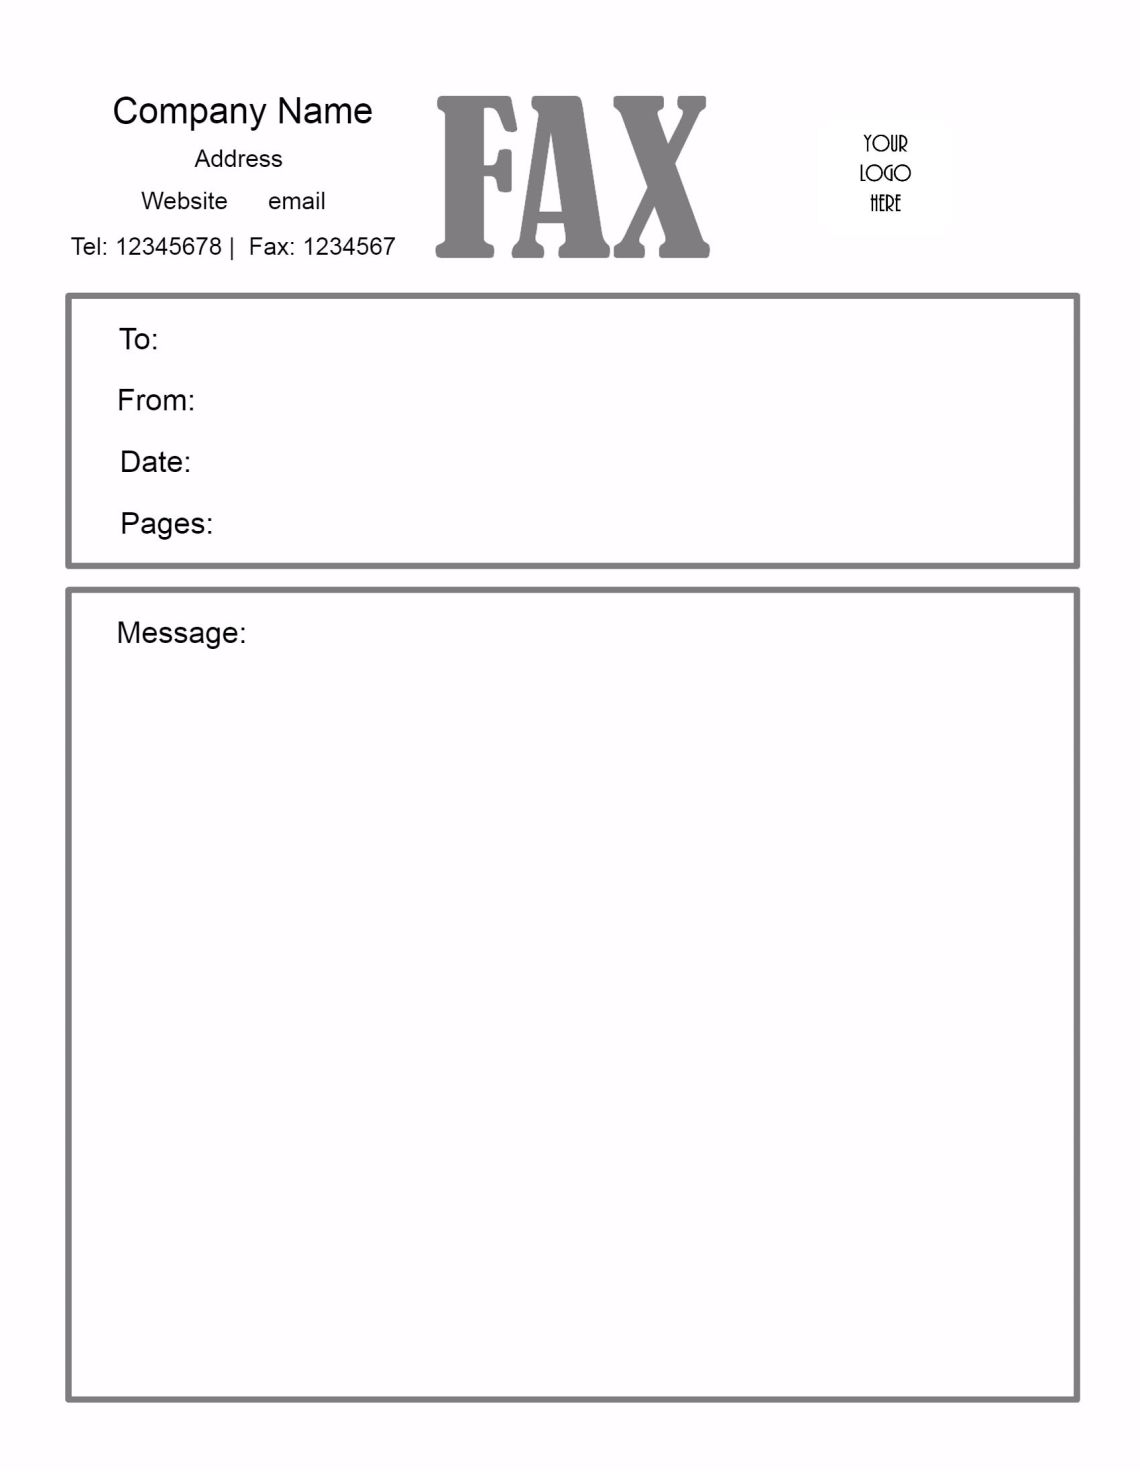 doc 400514 fax disclaimer sample fax disclaimer sample fax disclaimer sample confidential fax cover sheet in fax disclaimer sample